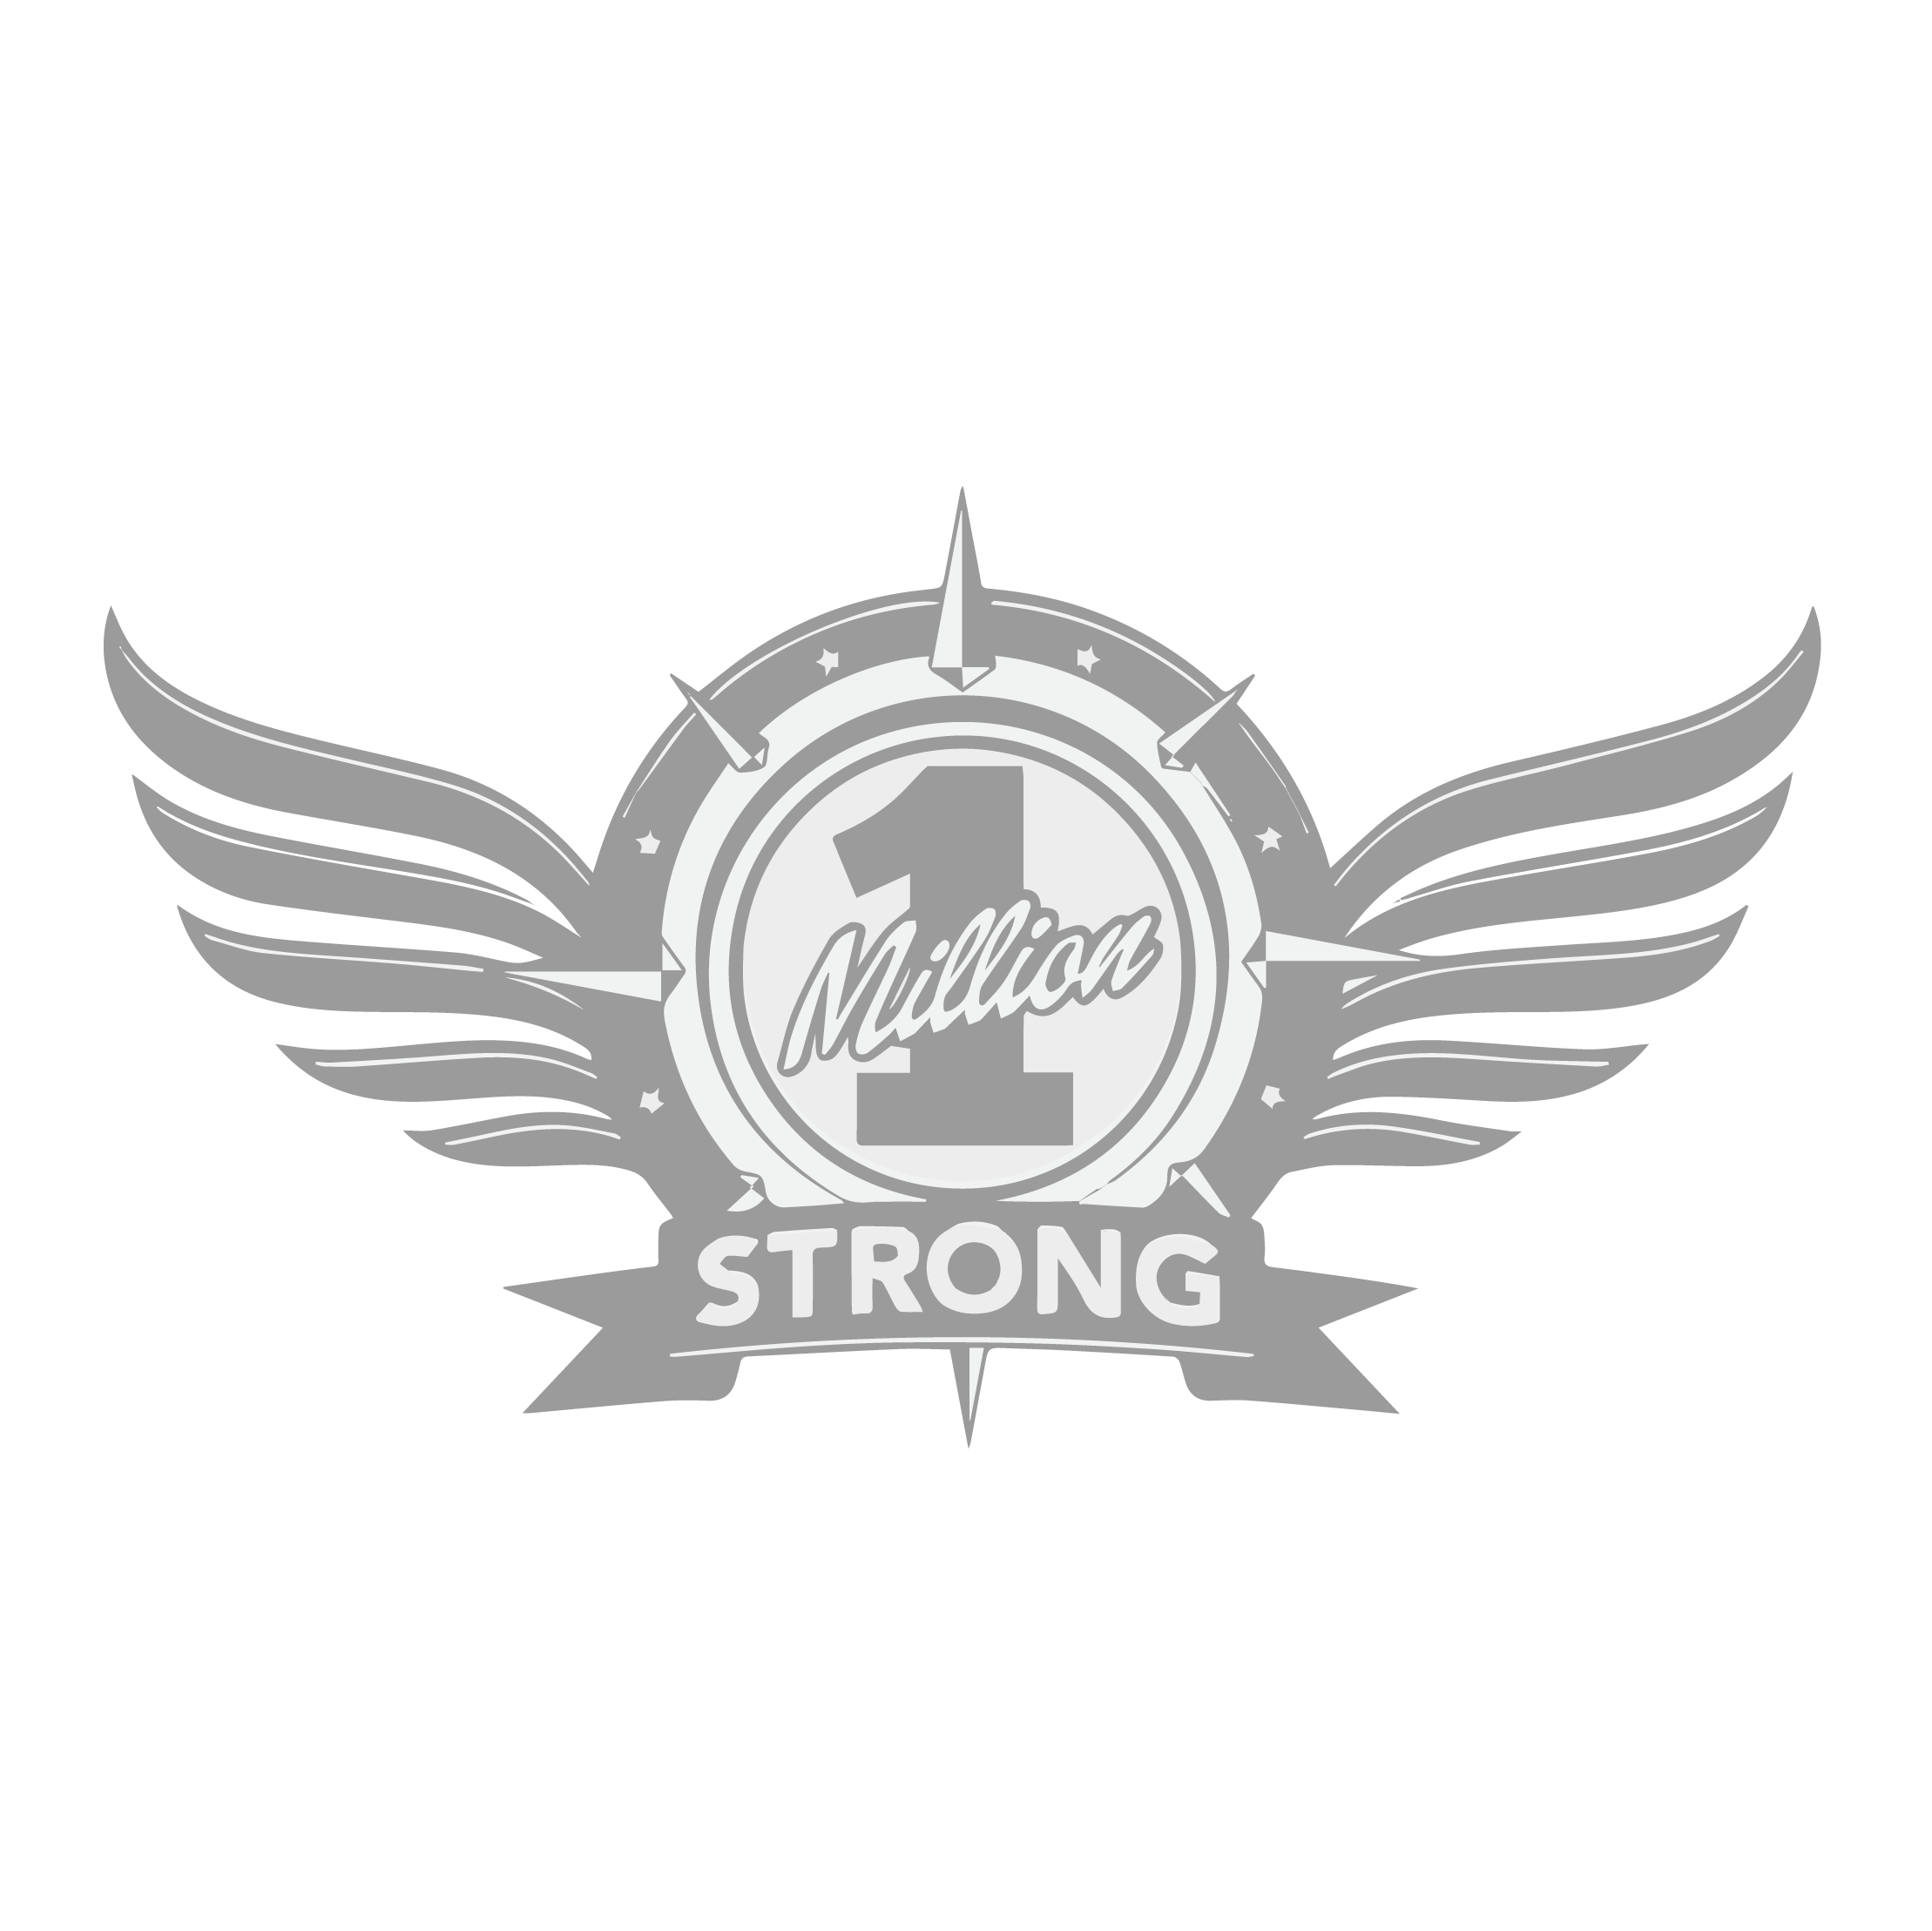 Logo of 1 million strong. Word 1 million strong located in a silver emblem, with the word strong located underneath it.